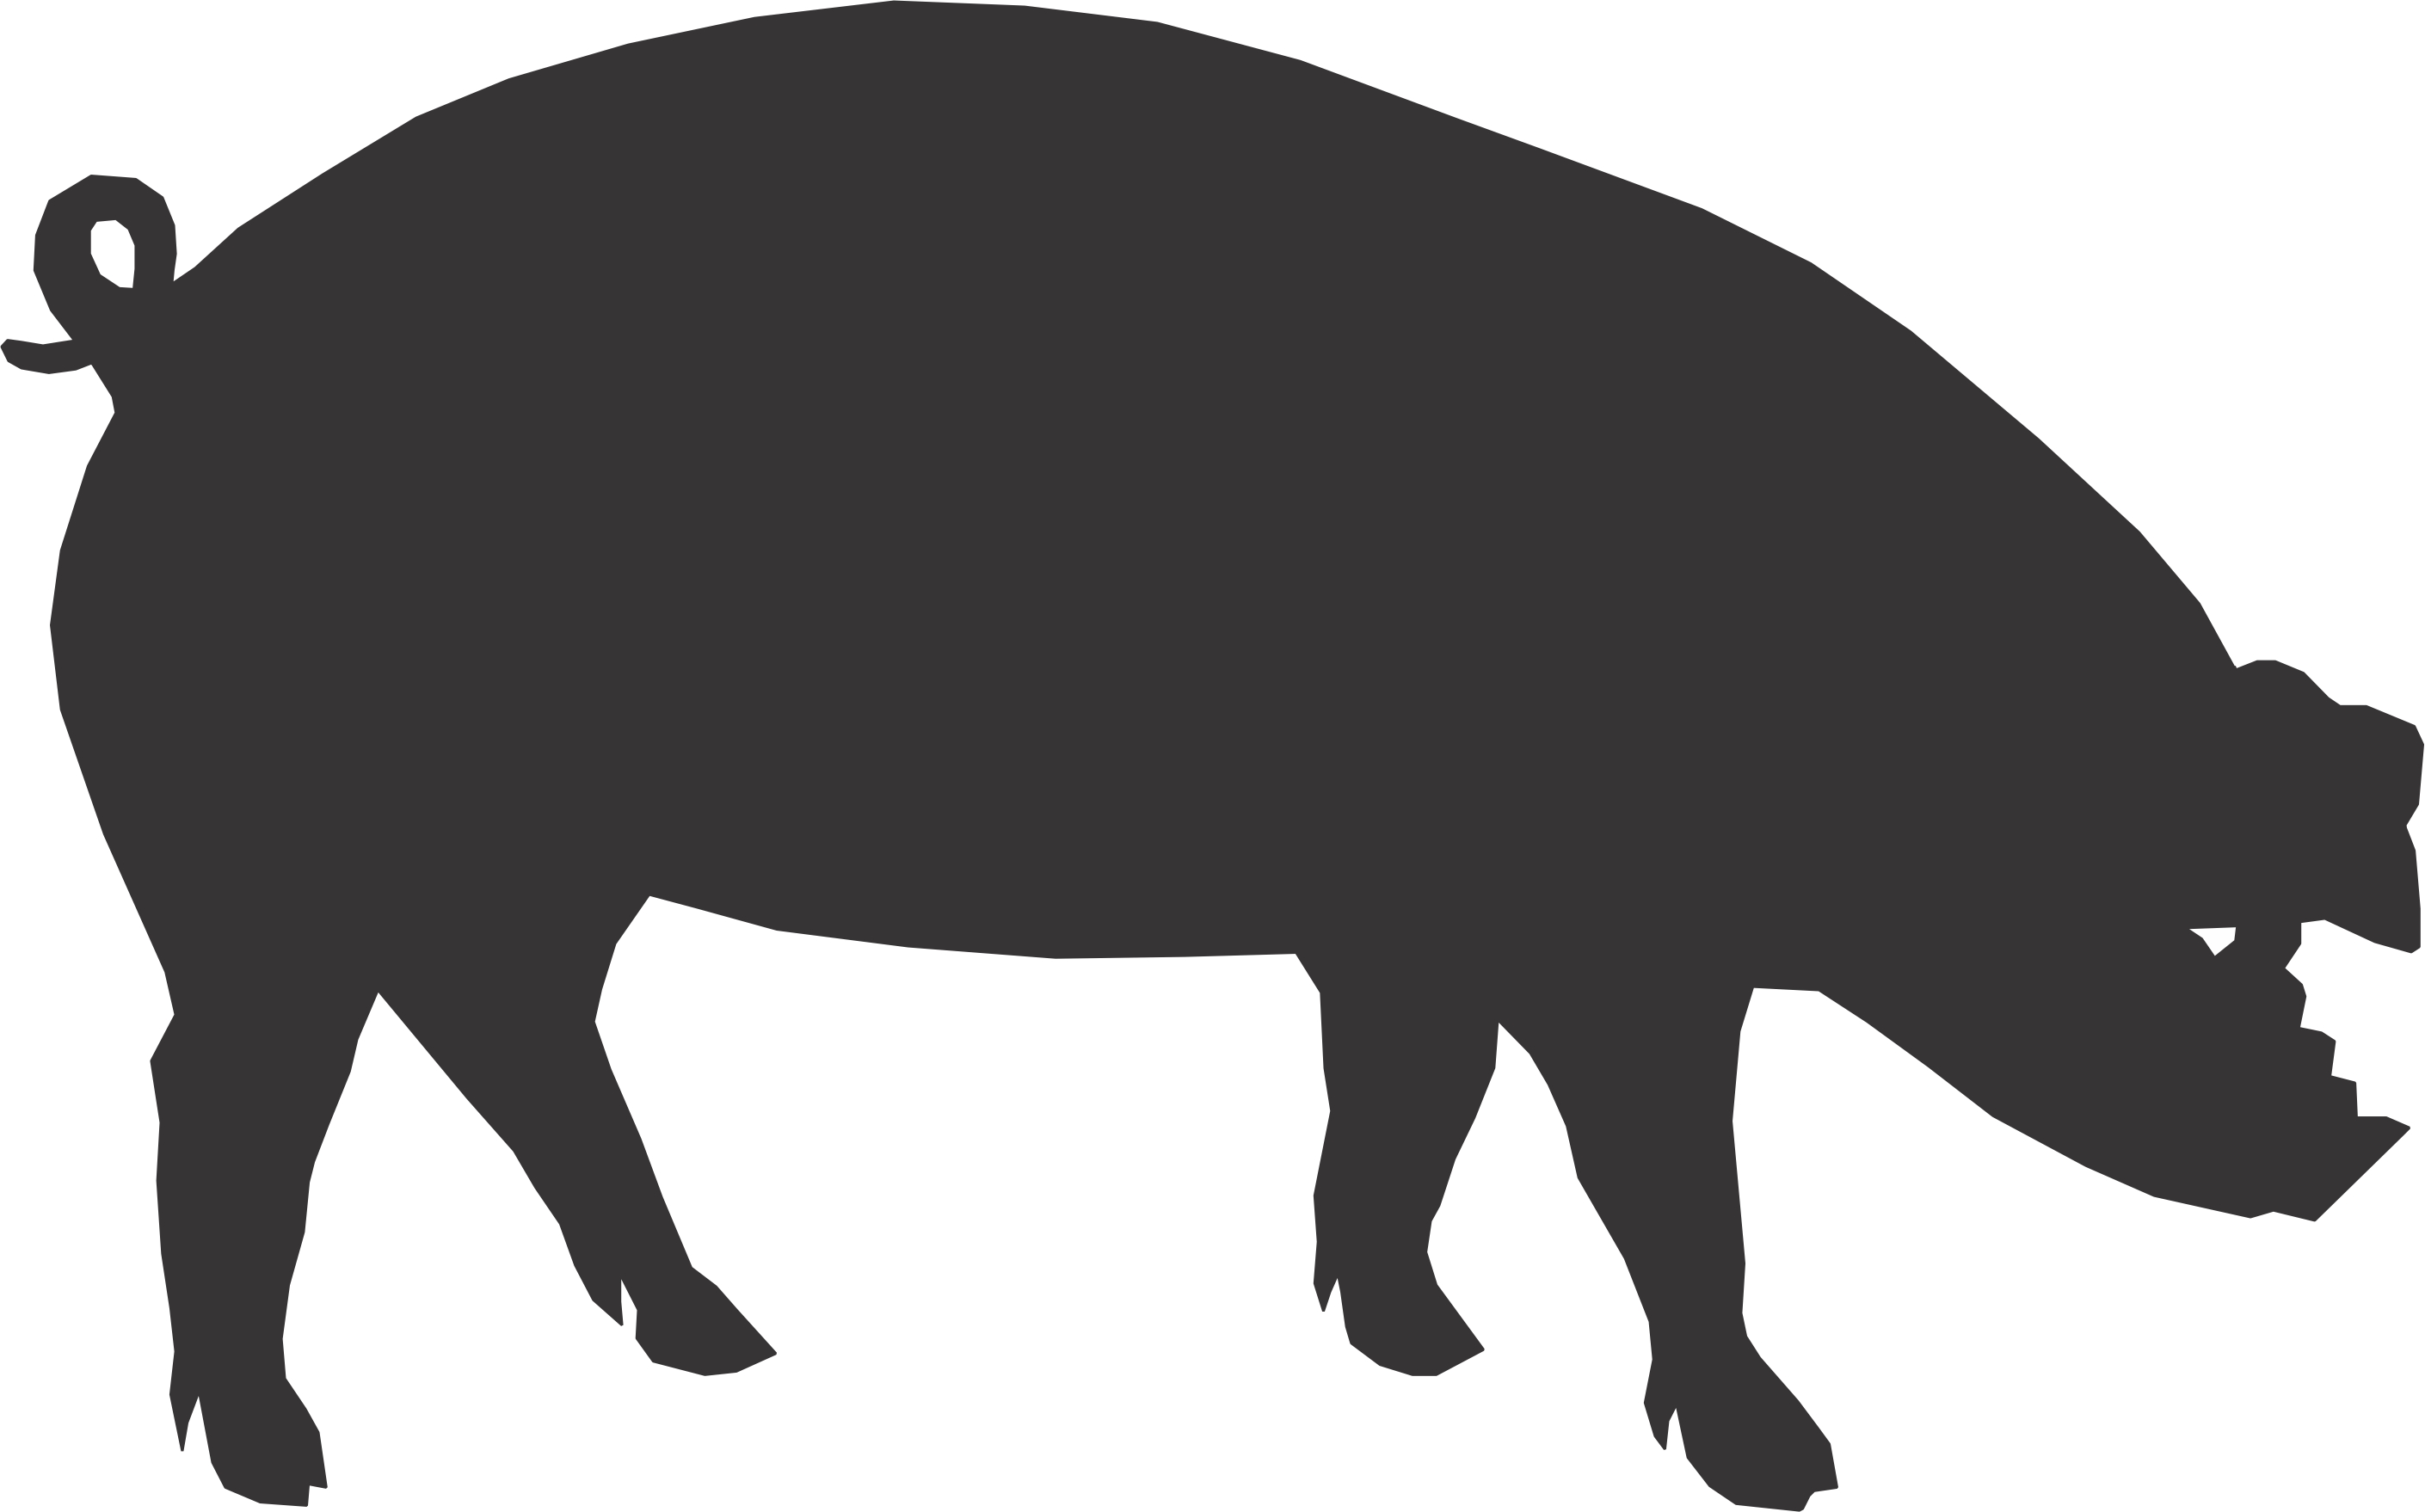 Roasted clipart . Pig clip art silhouette graphic transparent download